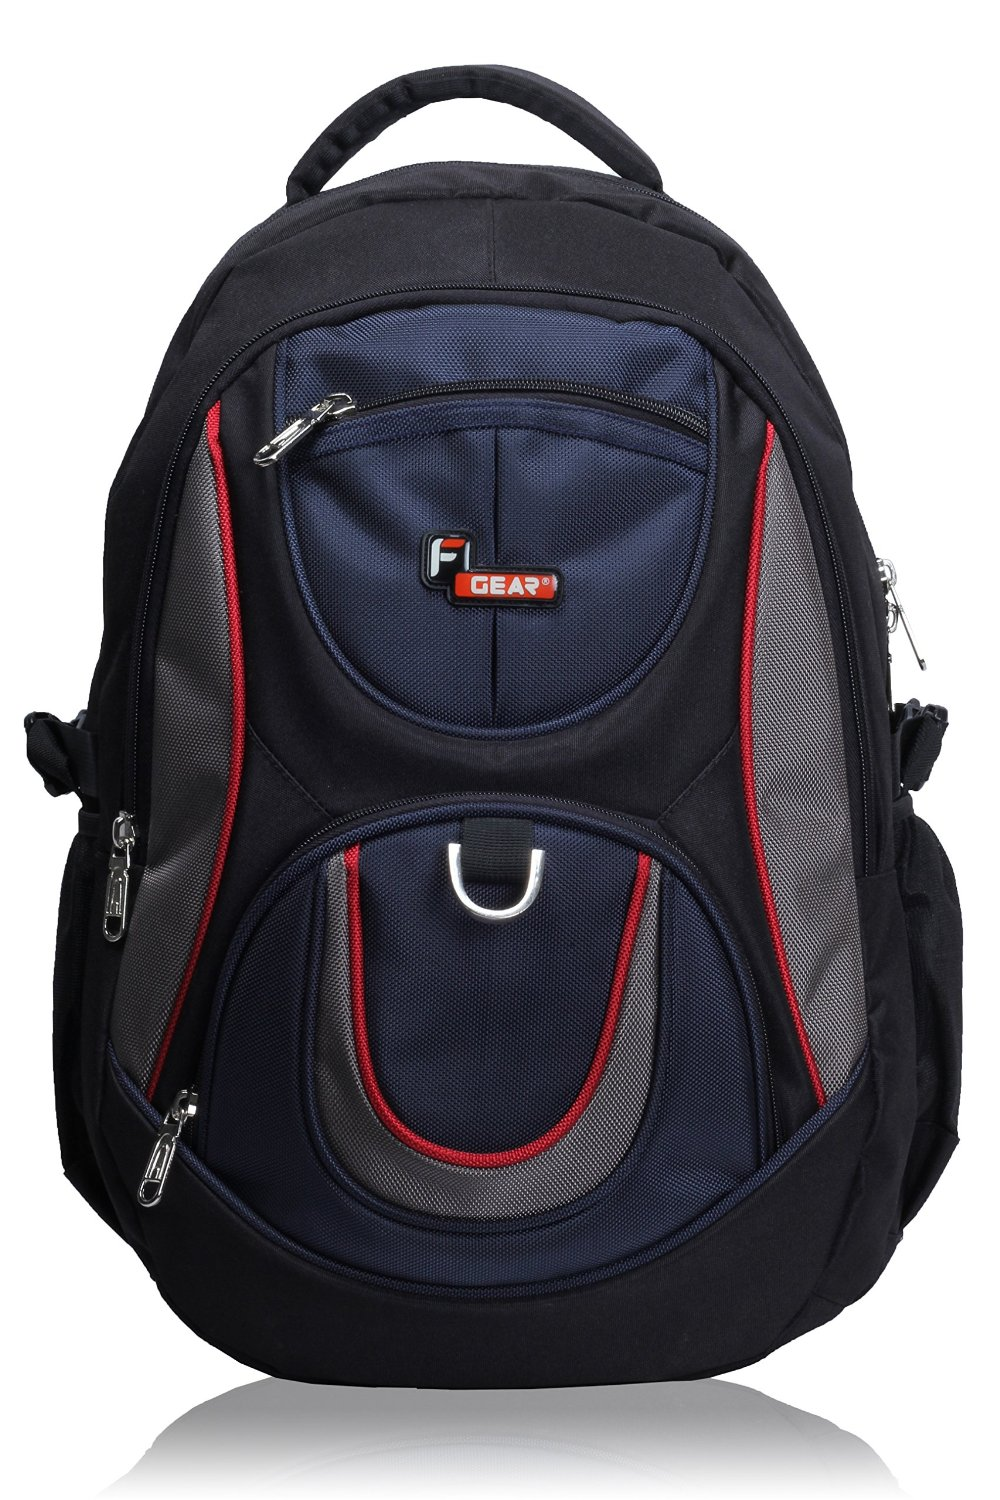 F Gear Polyester 29Litres Black Blue School Bag for Rs 728 (61% off)